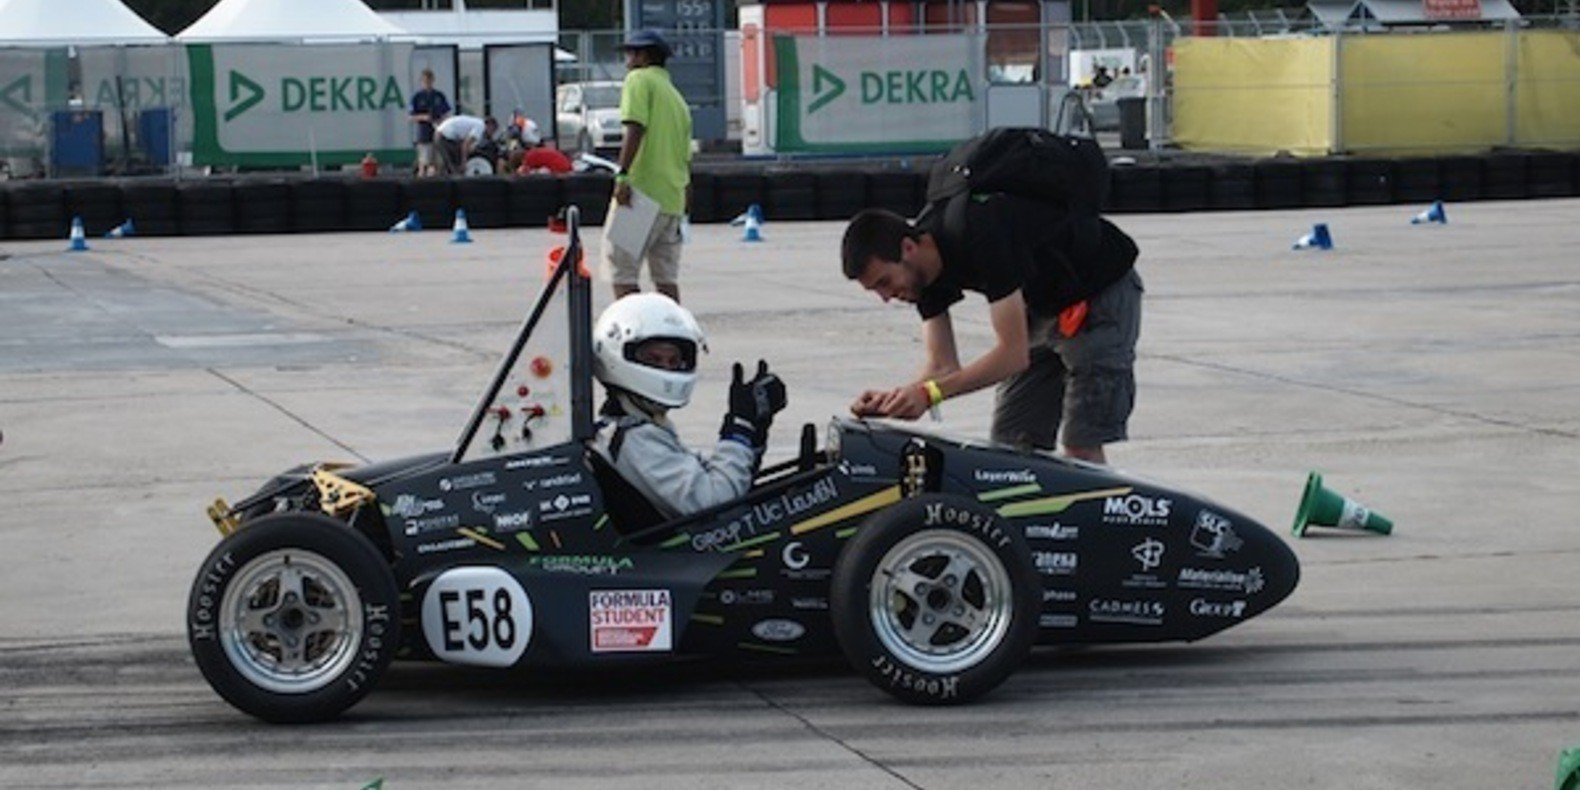 The Areion, the first race car printed in 3D